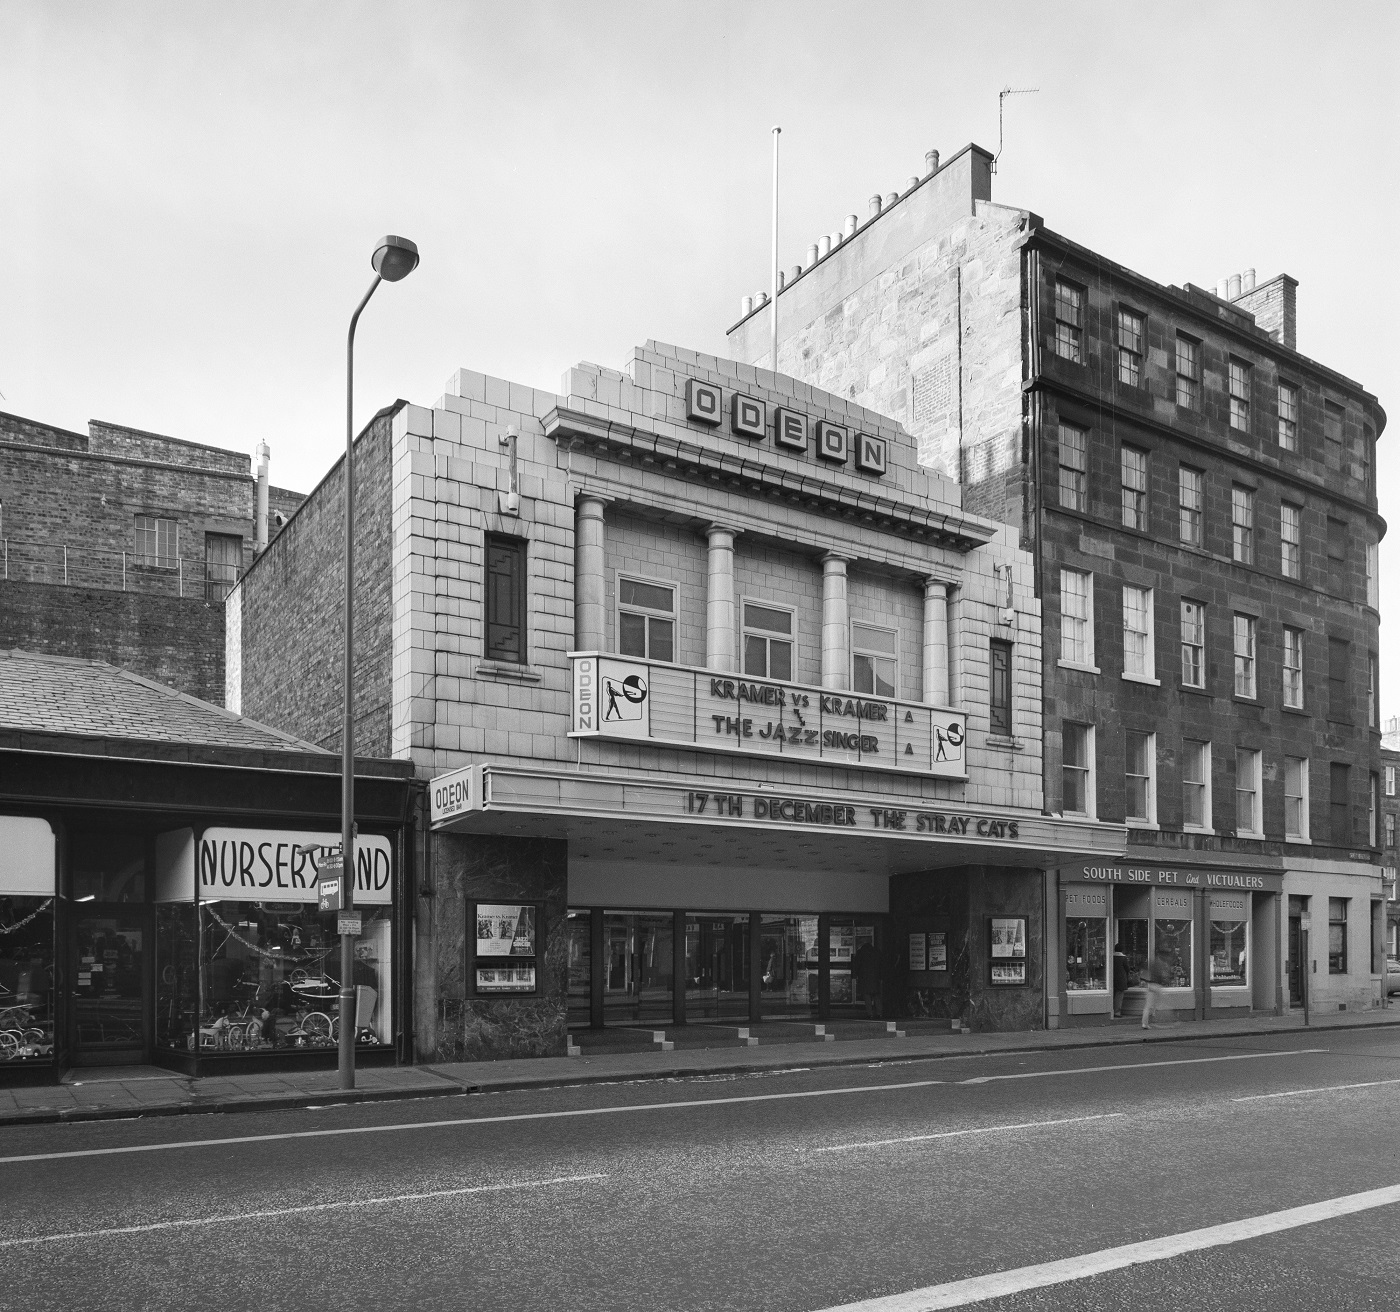 A black and white picture of the Odeon cinema